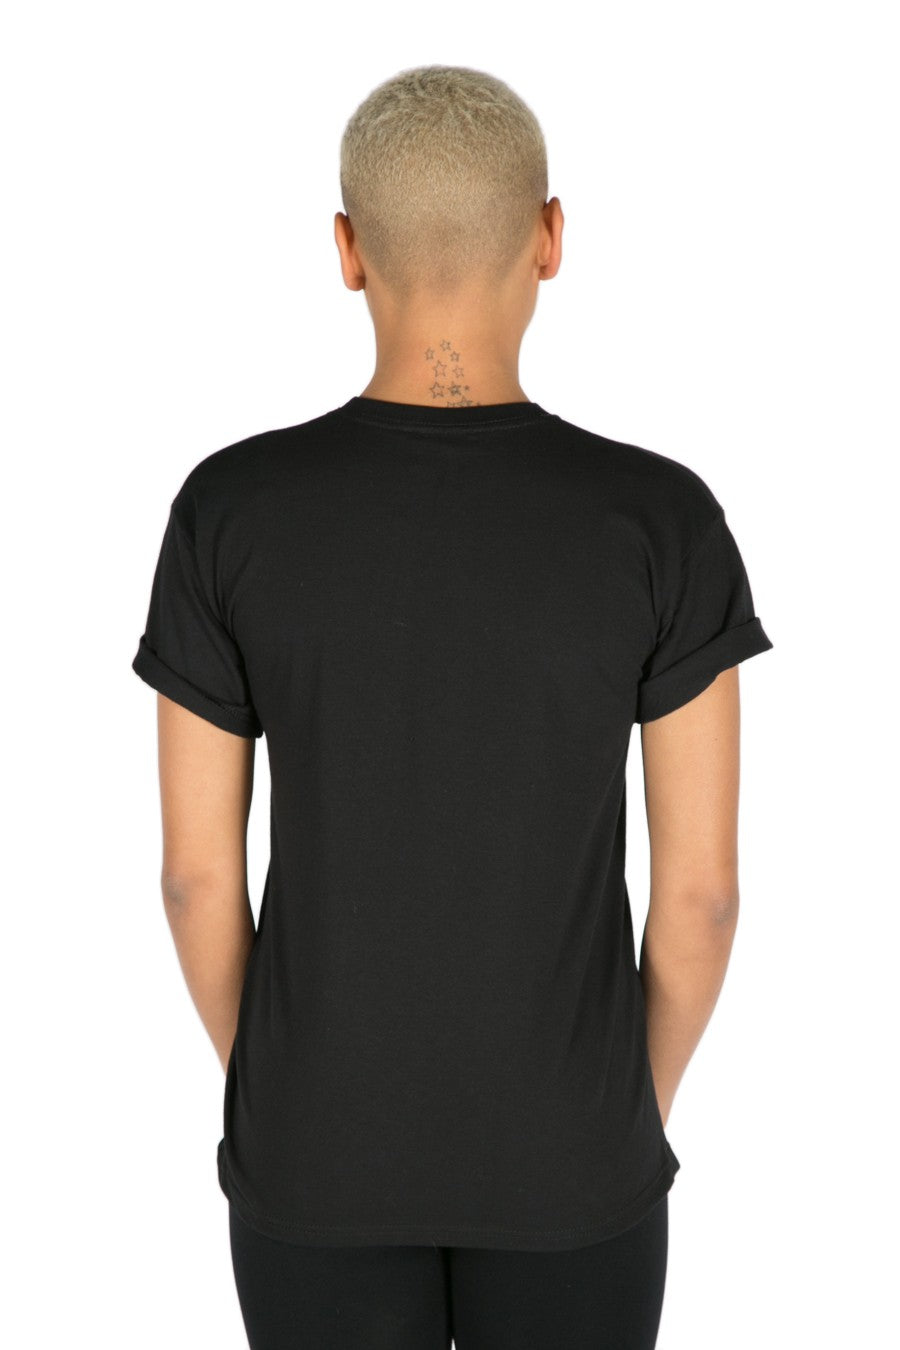 SNOW WAY SLOGAN T-SHIRT - BLACK